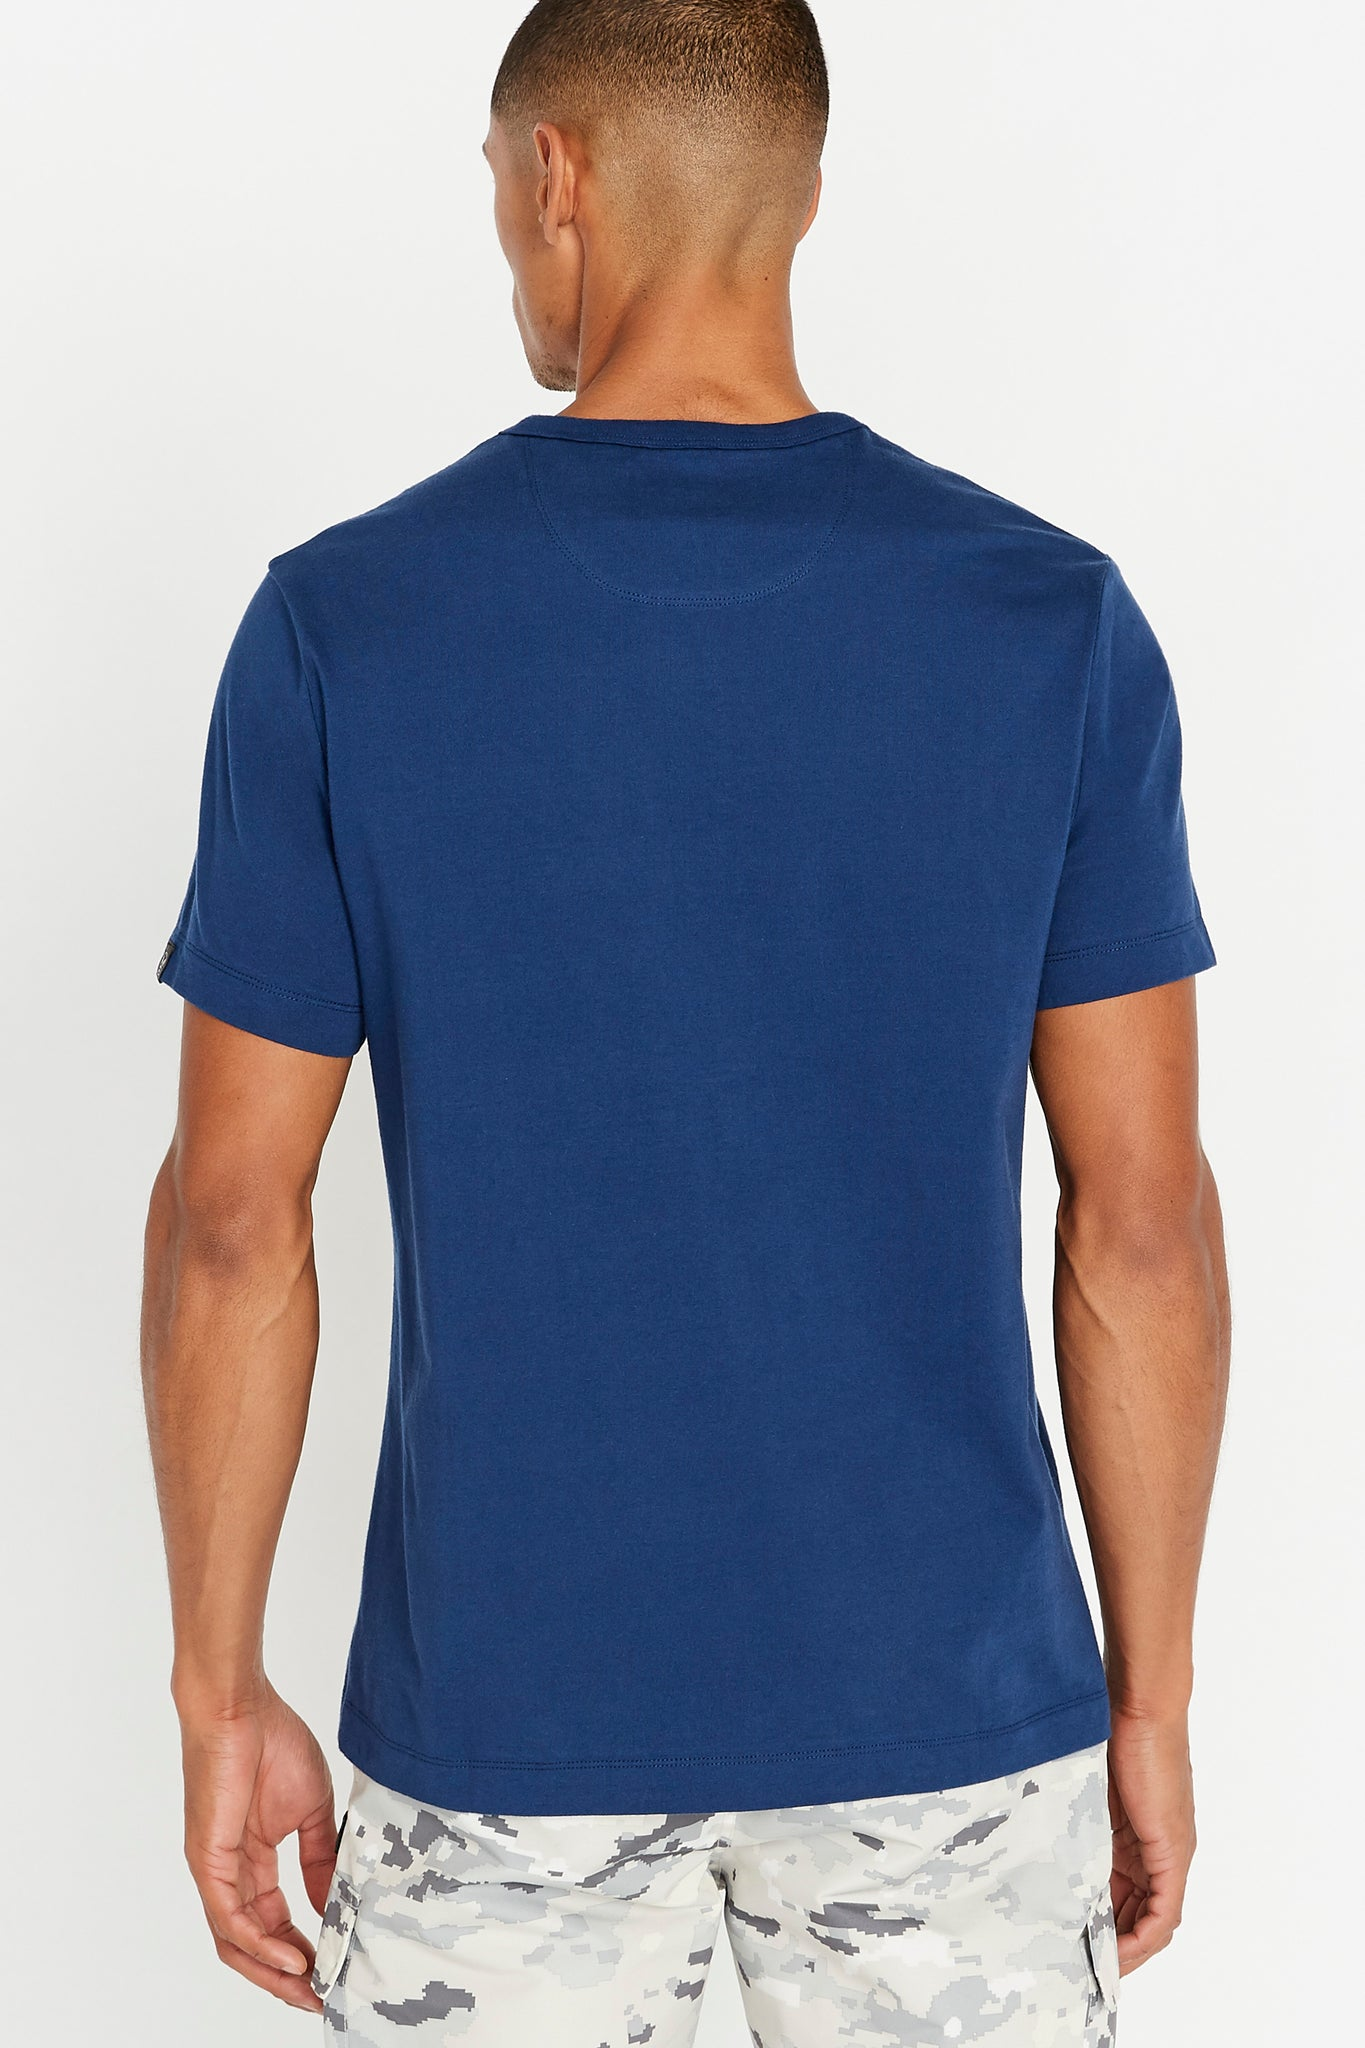 Back view of men wearing a blue short sleeve crew neck T-shirt